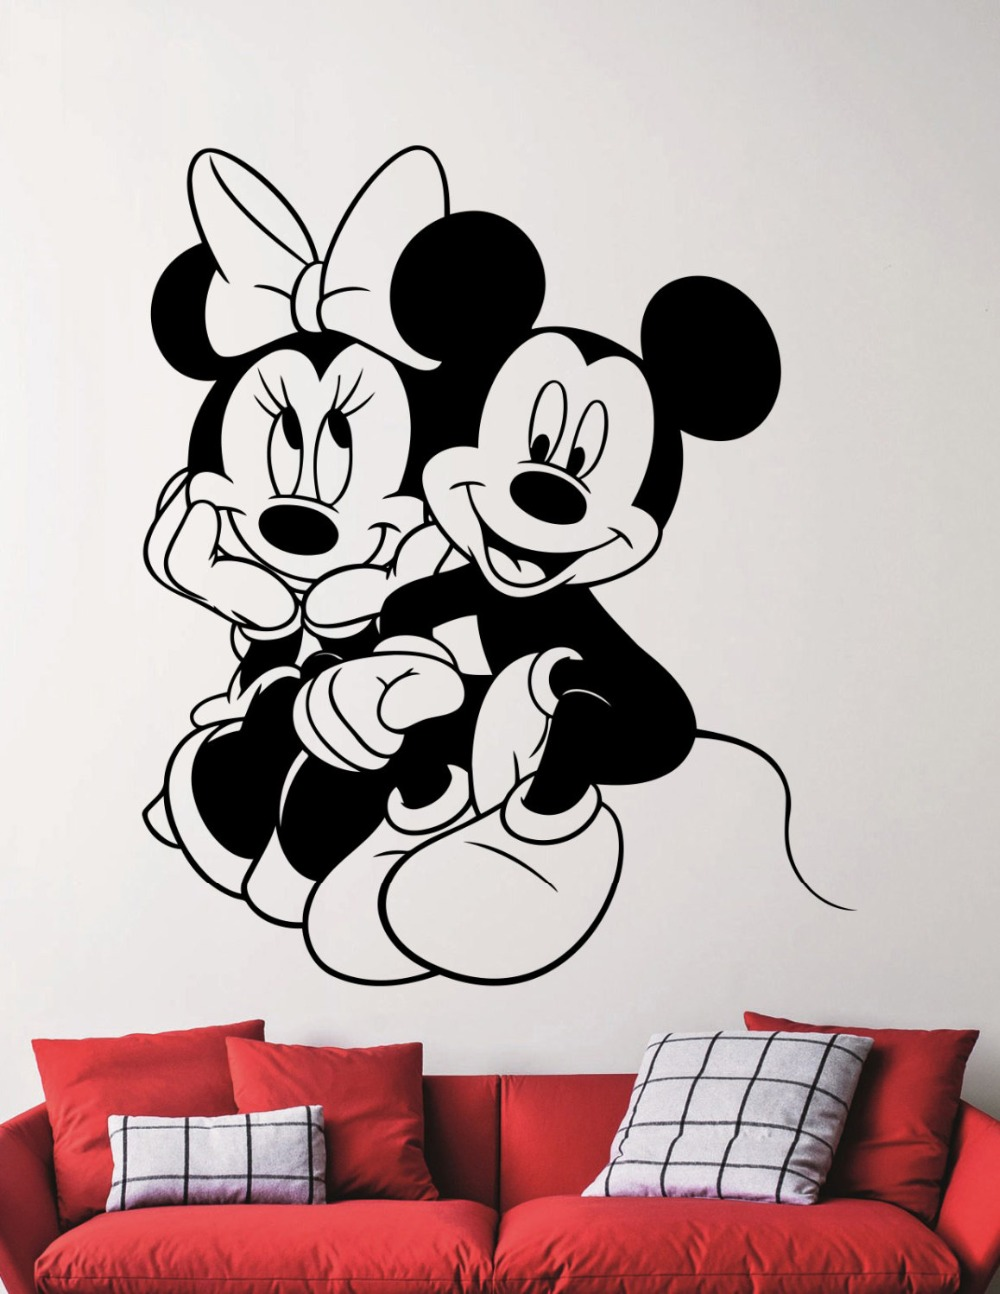 mickey y minnie pegatinas de pared para cuartos de los nios sala de juegos interior extrable tatuajes de pared de vinilo decor